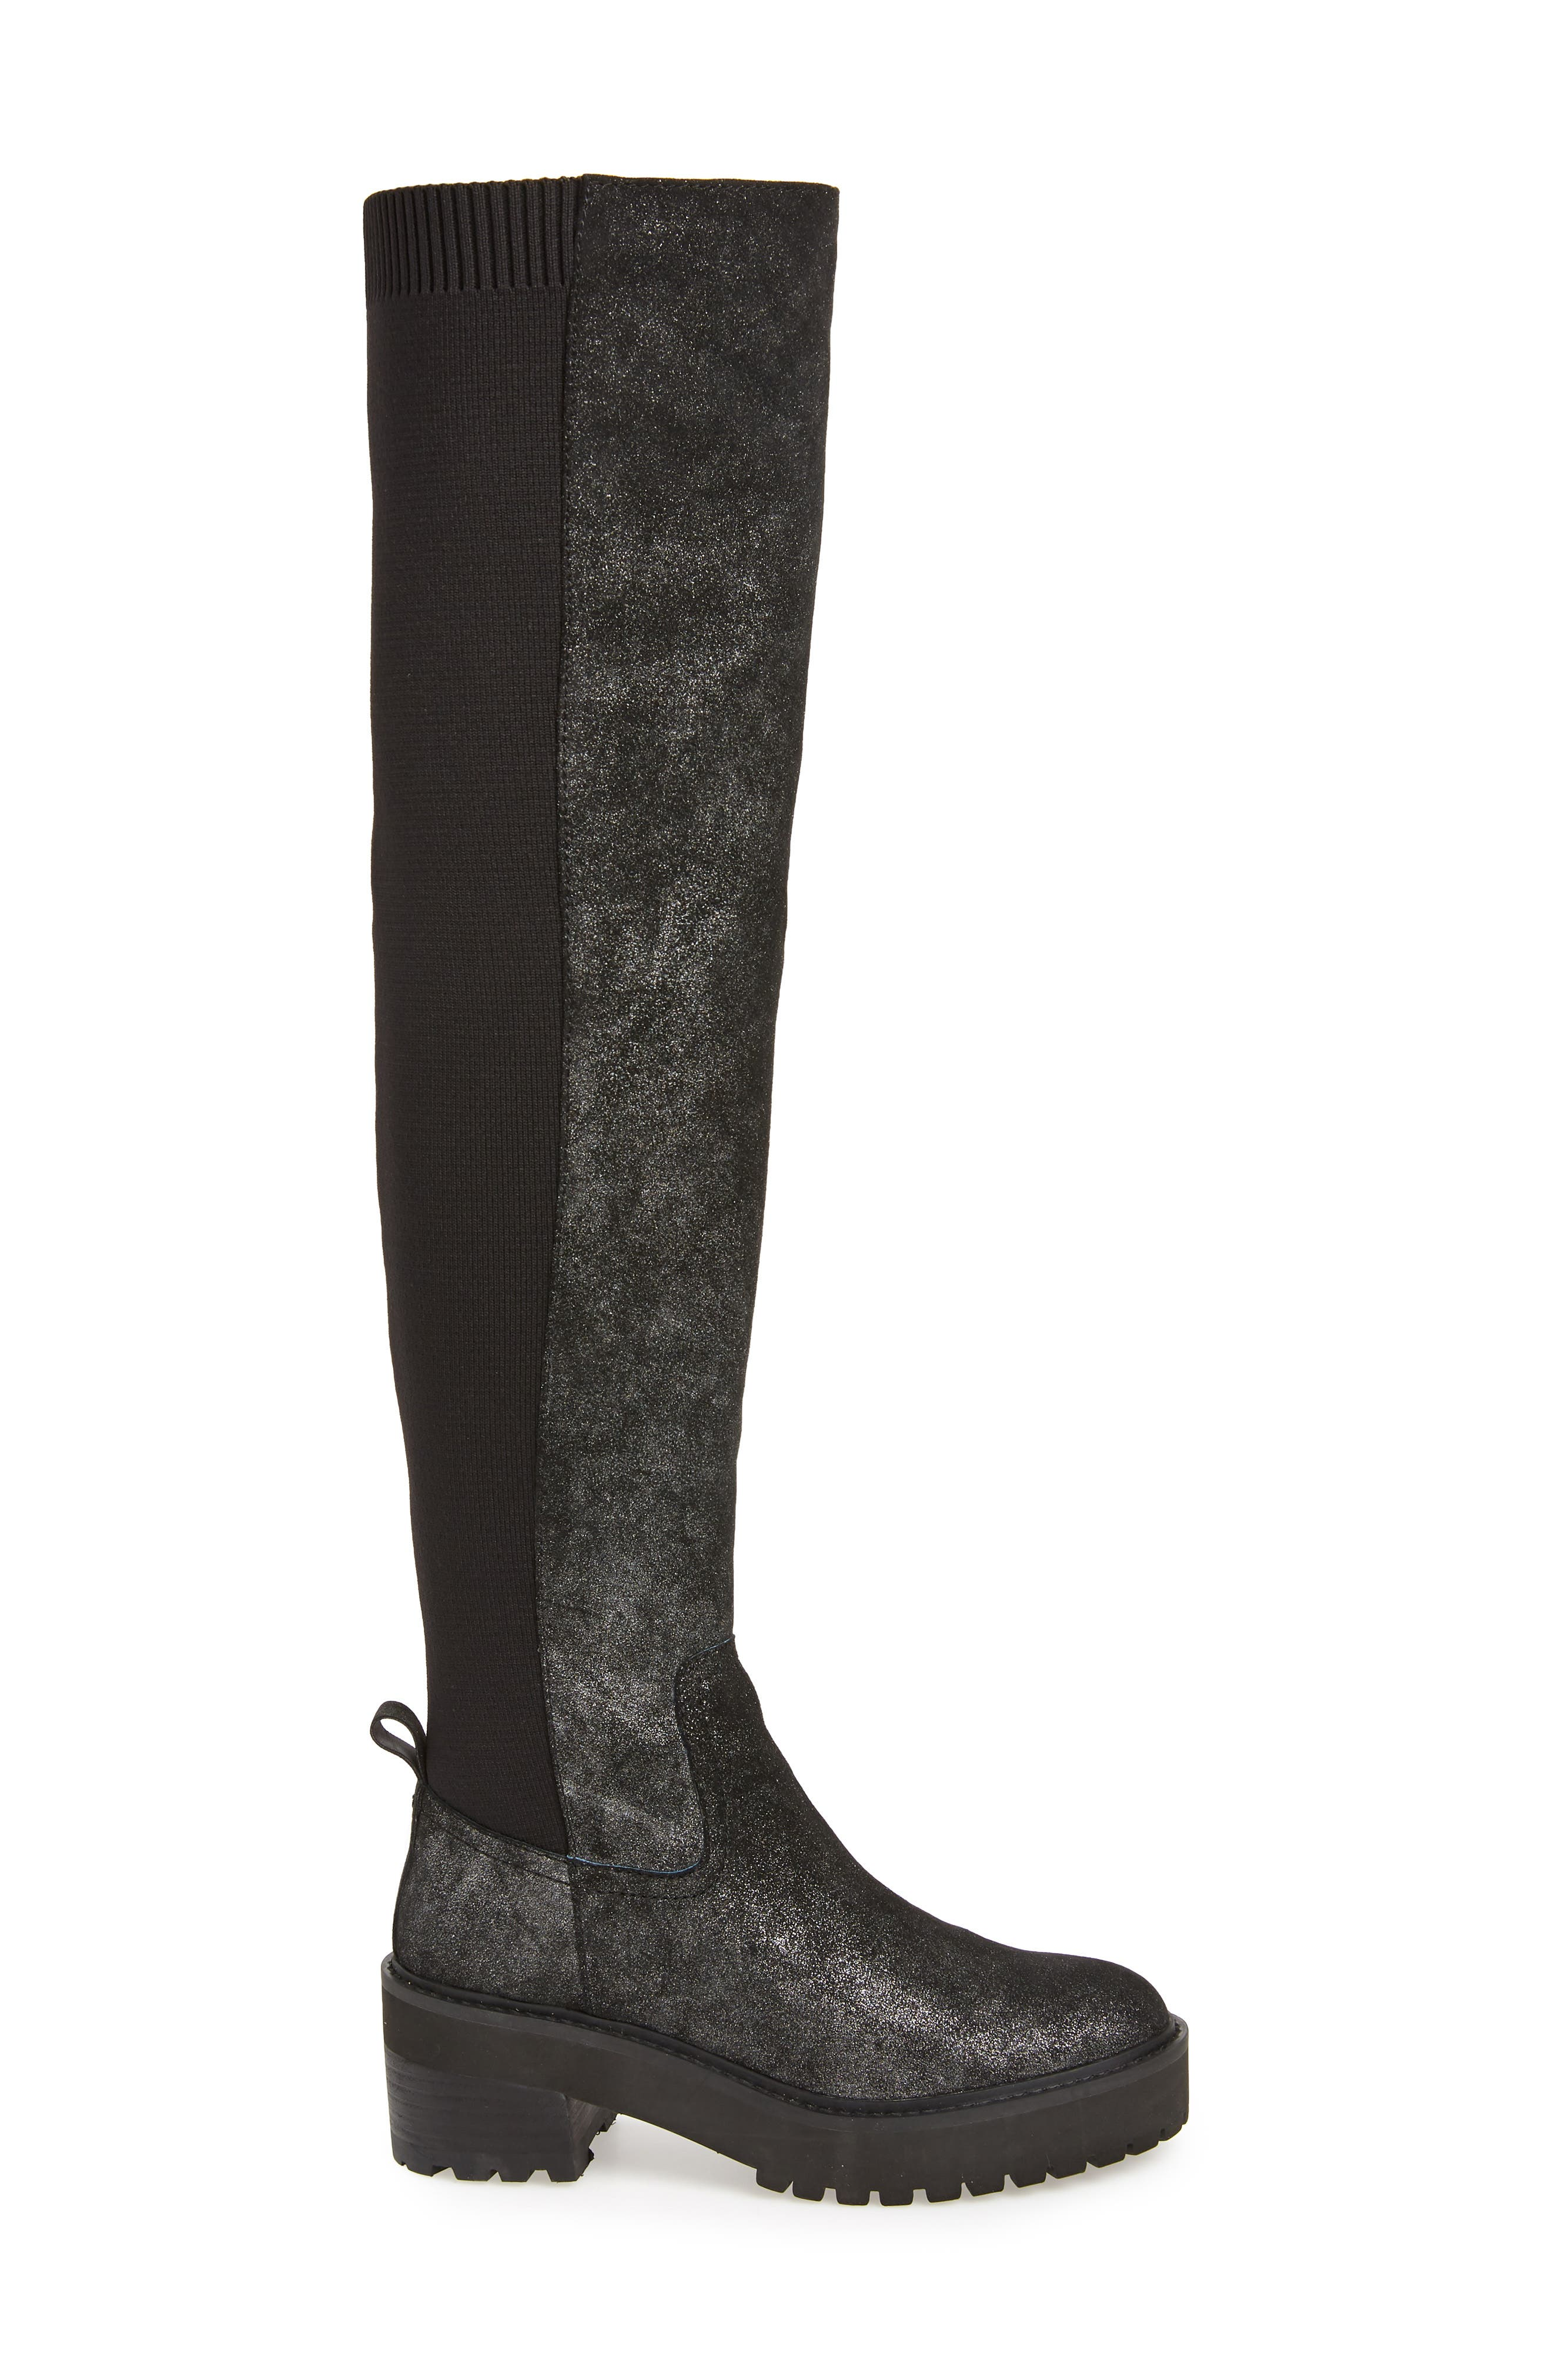 Lindy Over the Knee Boot,                             Alternate thumbnail 3, color,                             001